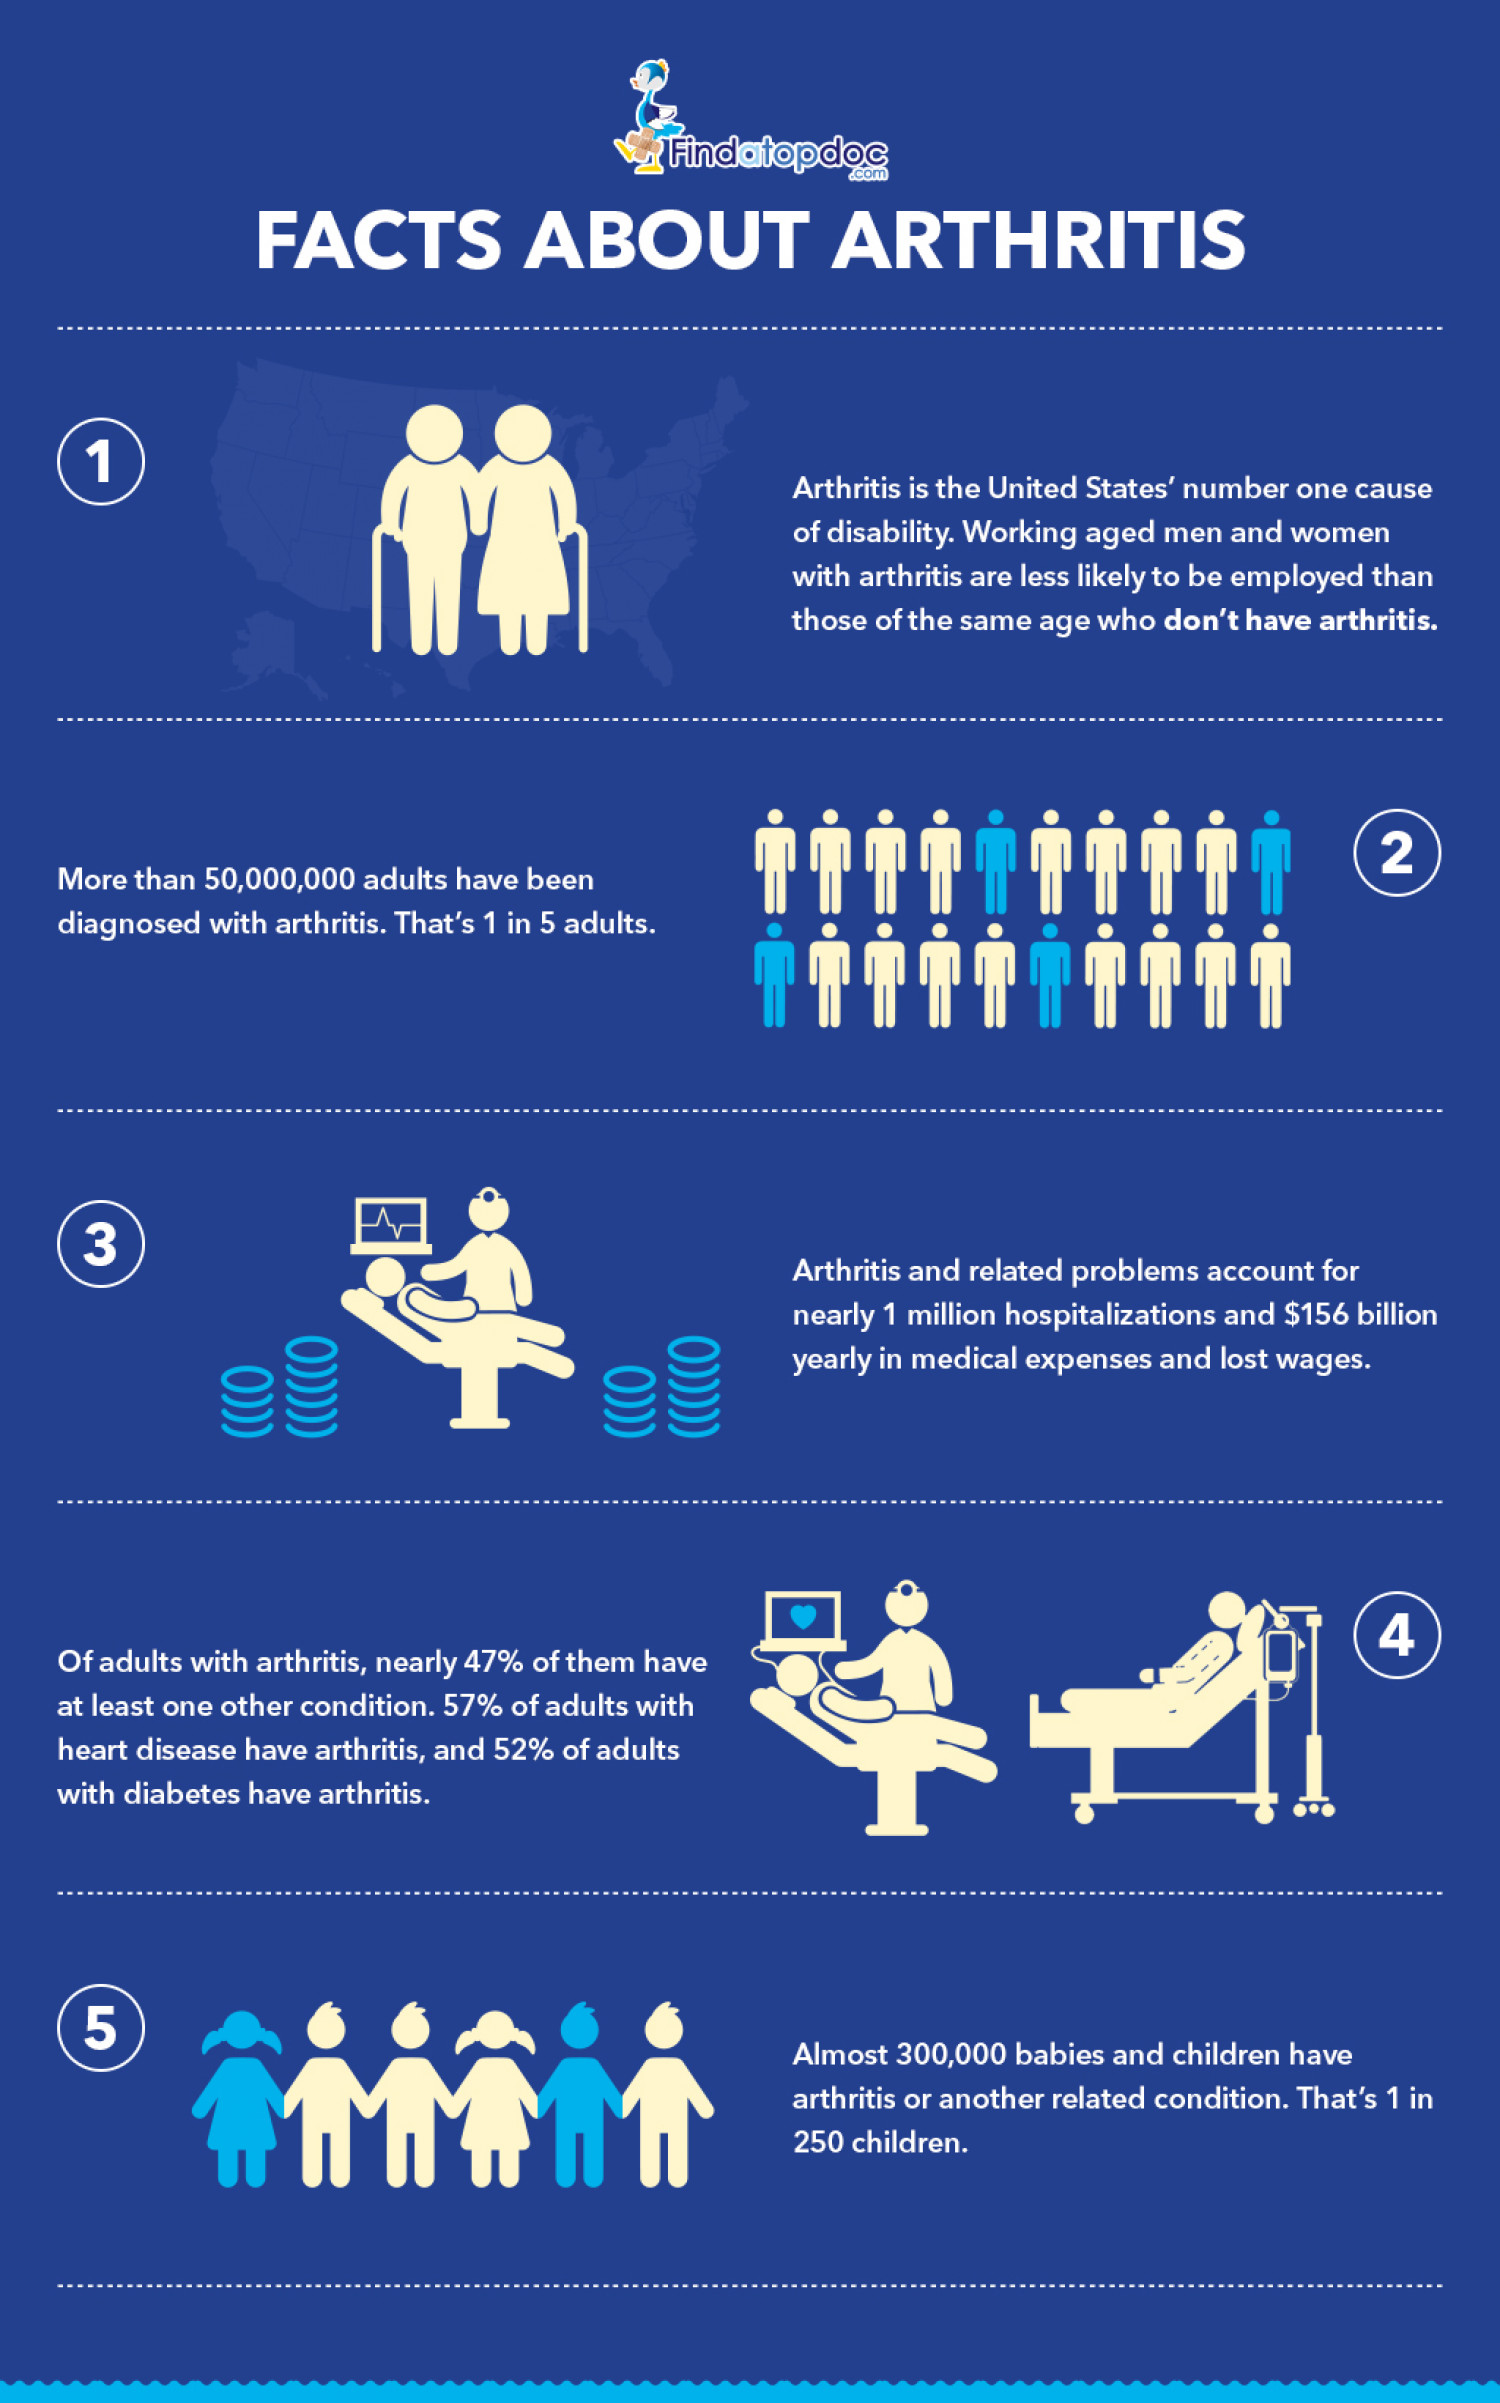 Facts About Arthritis in United States Infographic